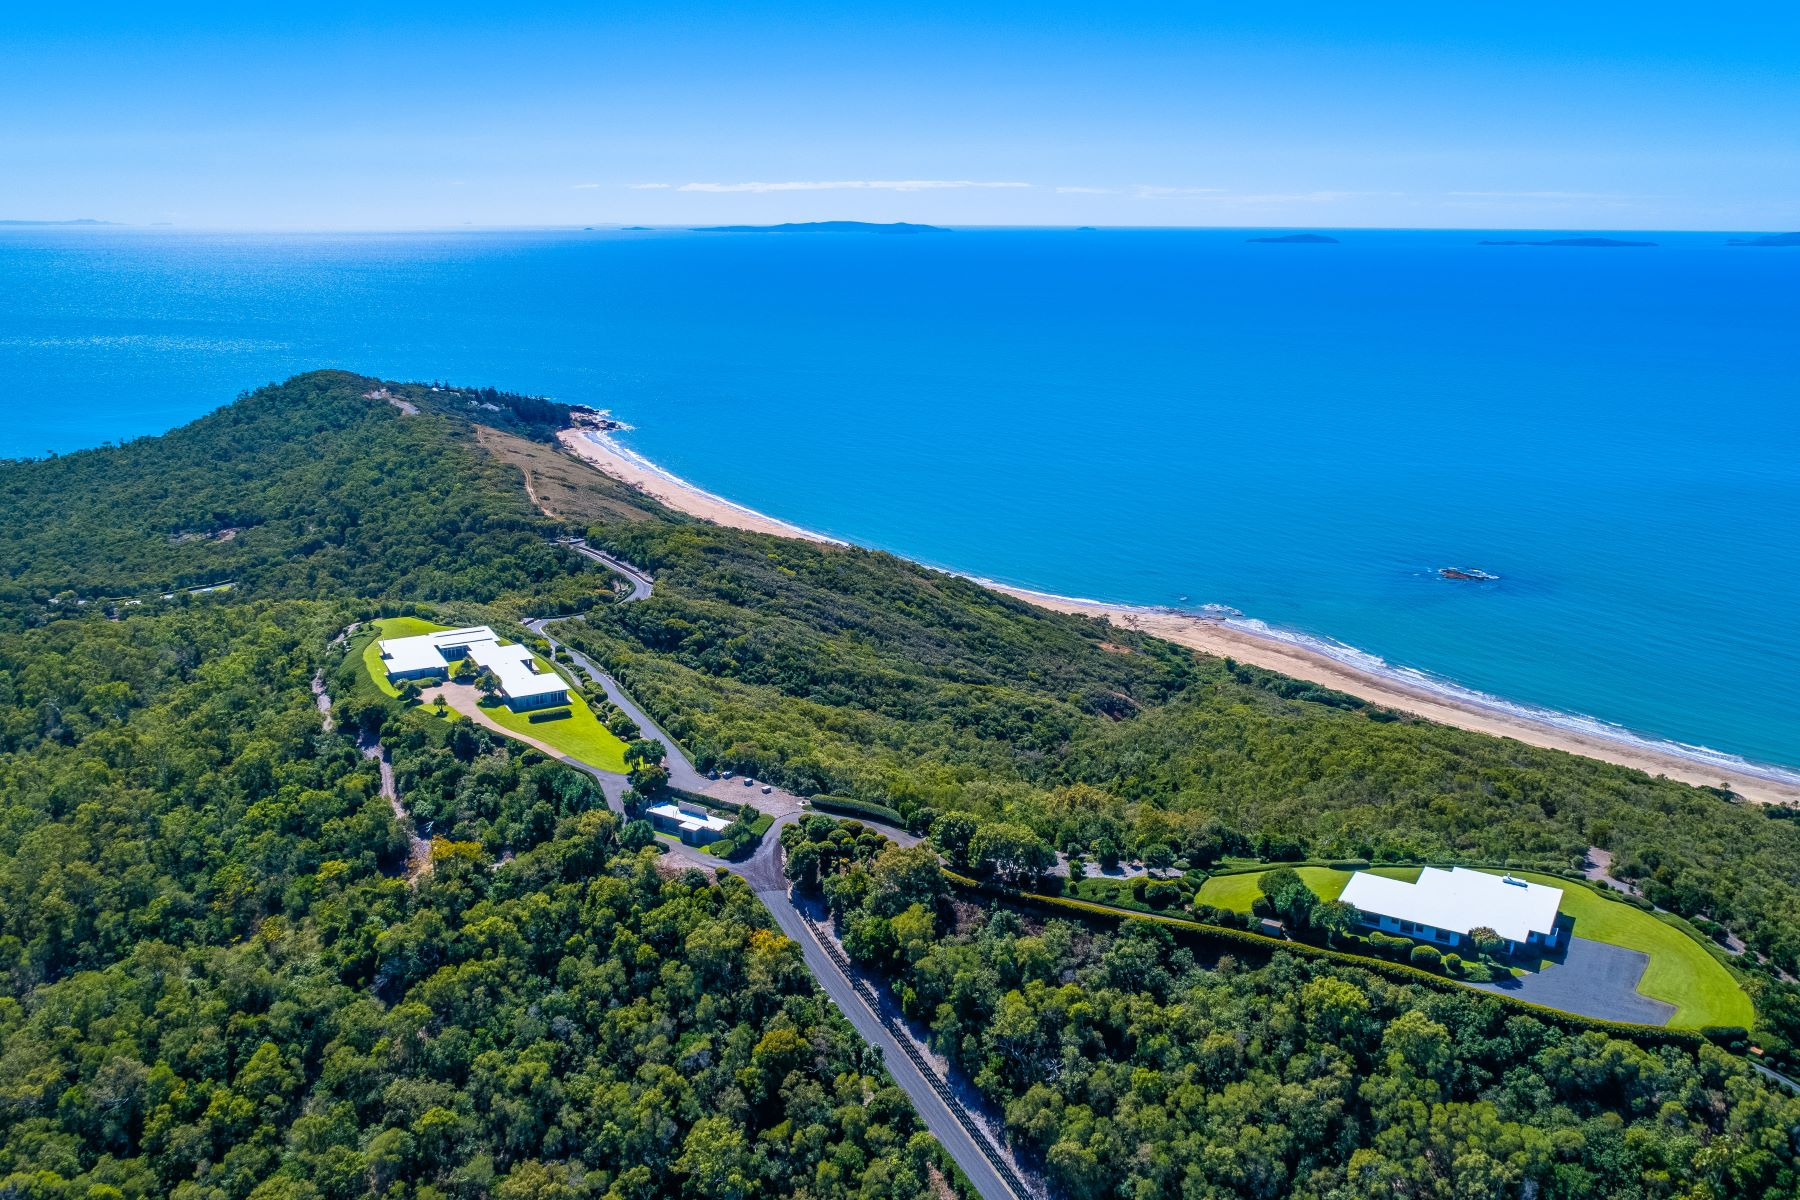 Single Family Homes for Sale at 'Mount Haven' 92 Ritamada Drive and 1339 Scenic Hwy North Queensland, Queensland 4710 Australia